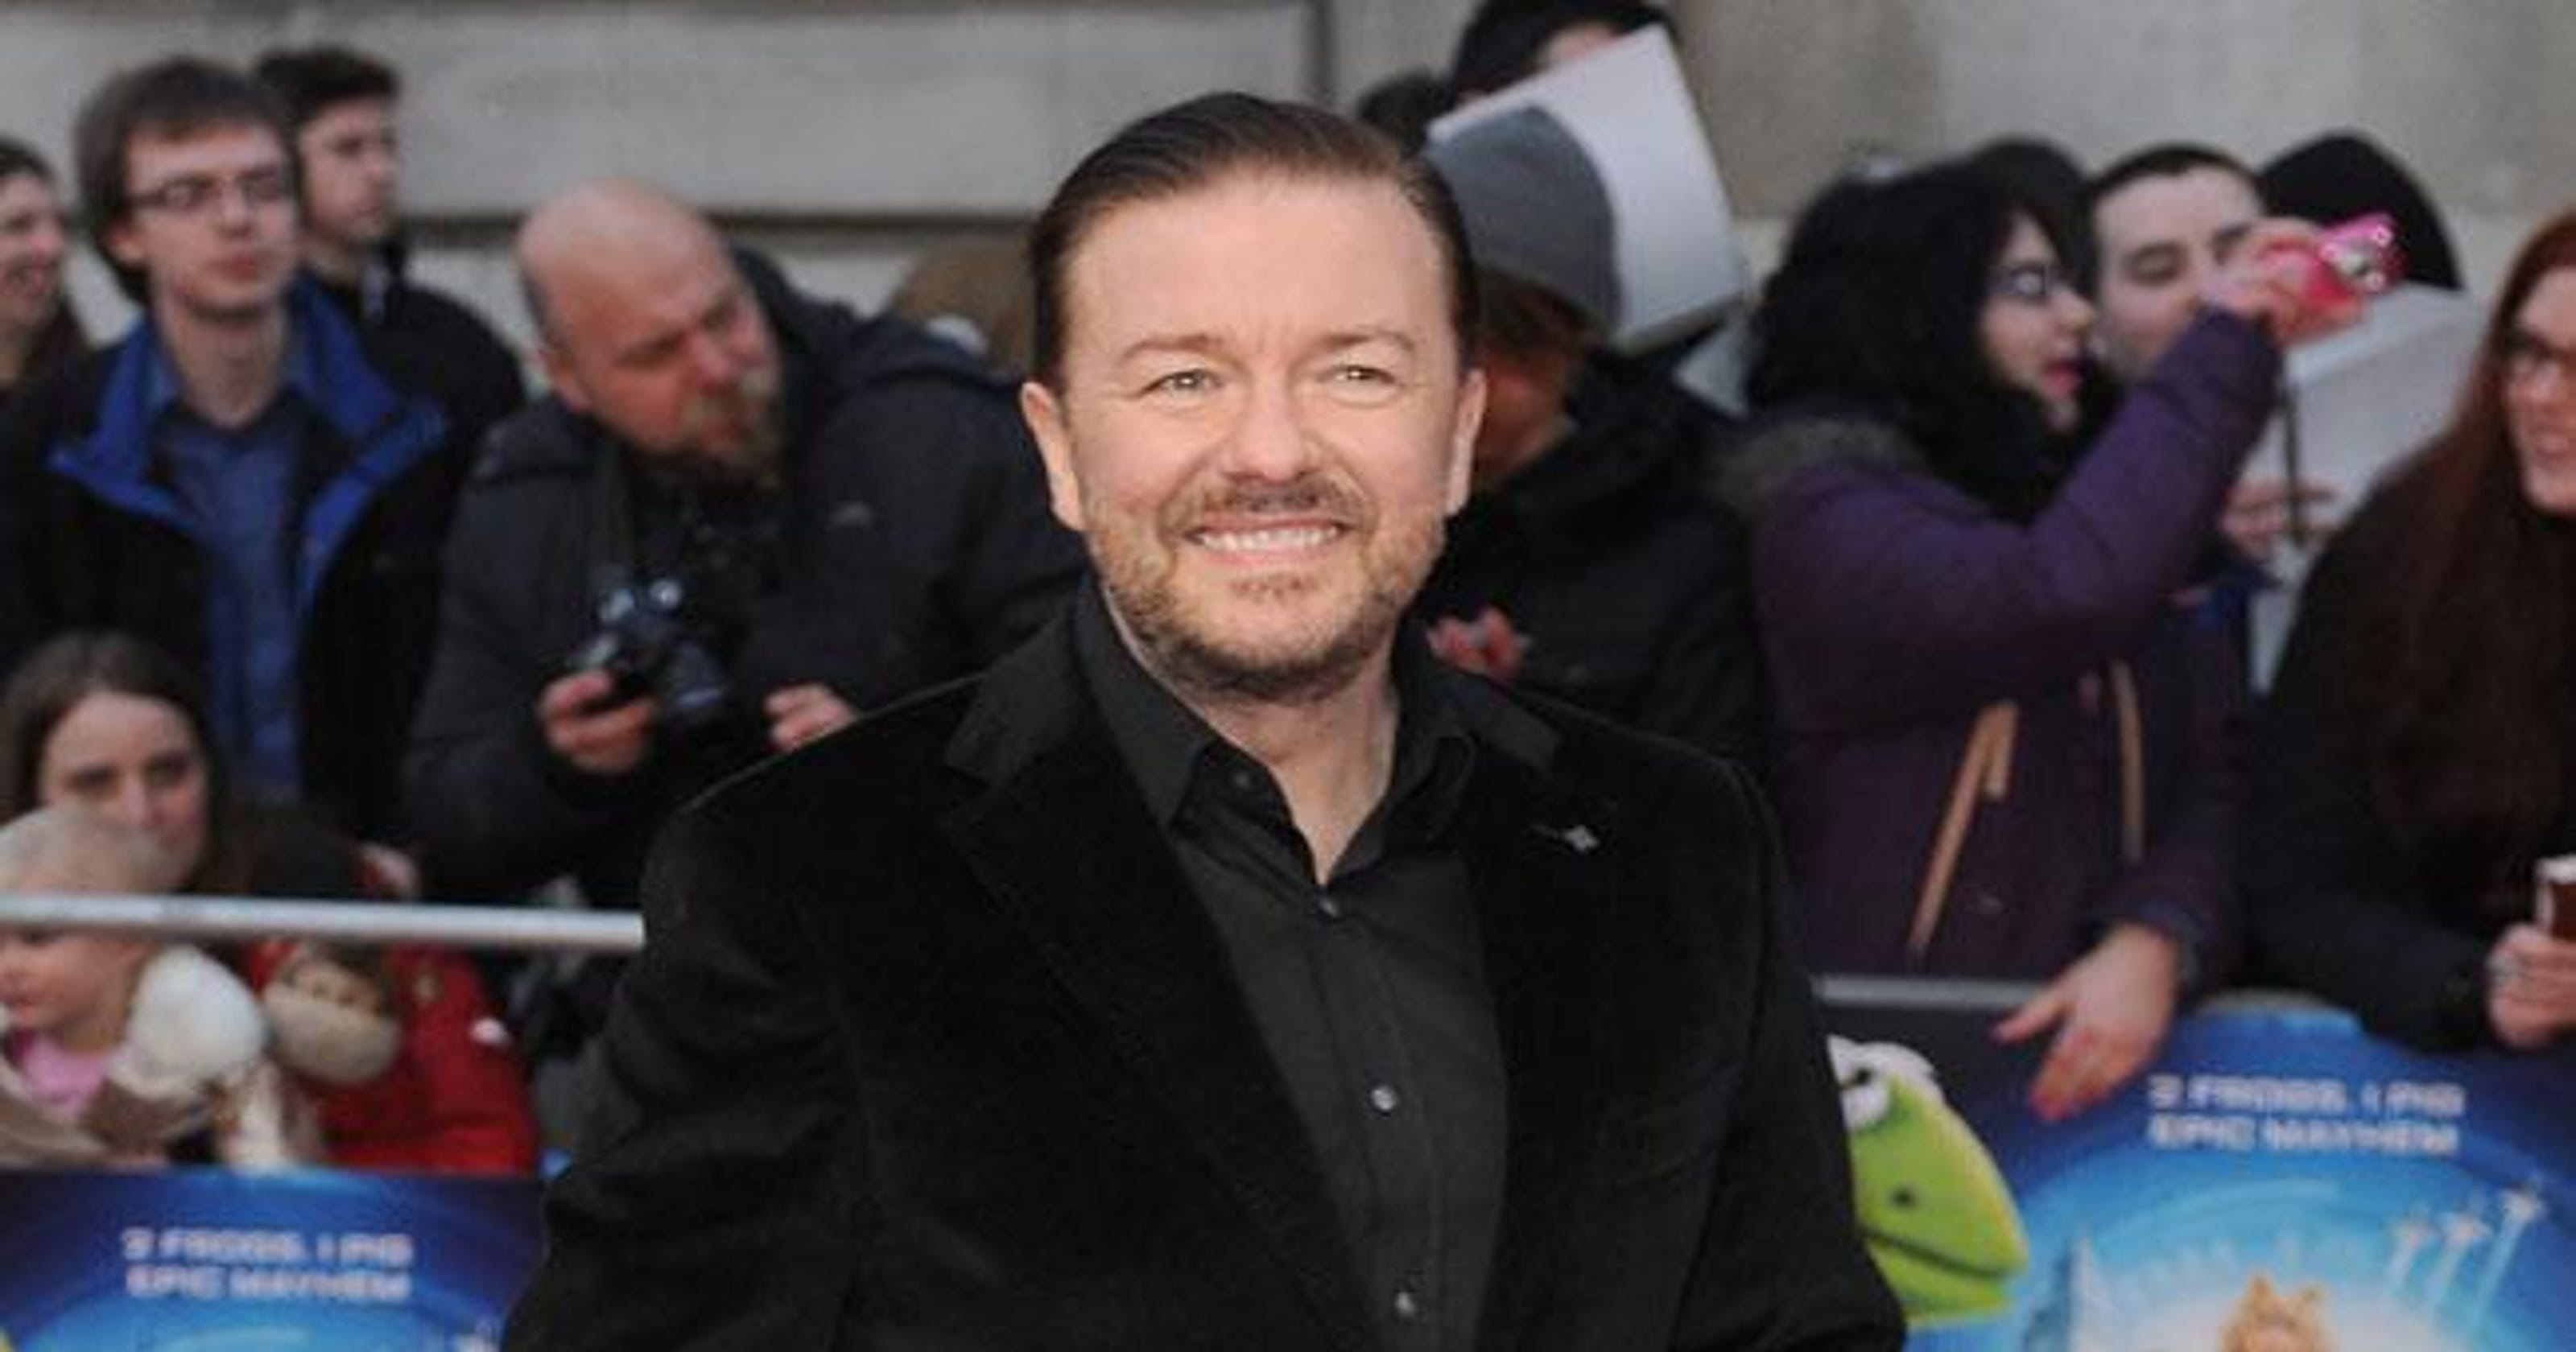 Ricky Gervais shocked by Golden Globe controversy